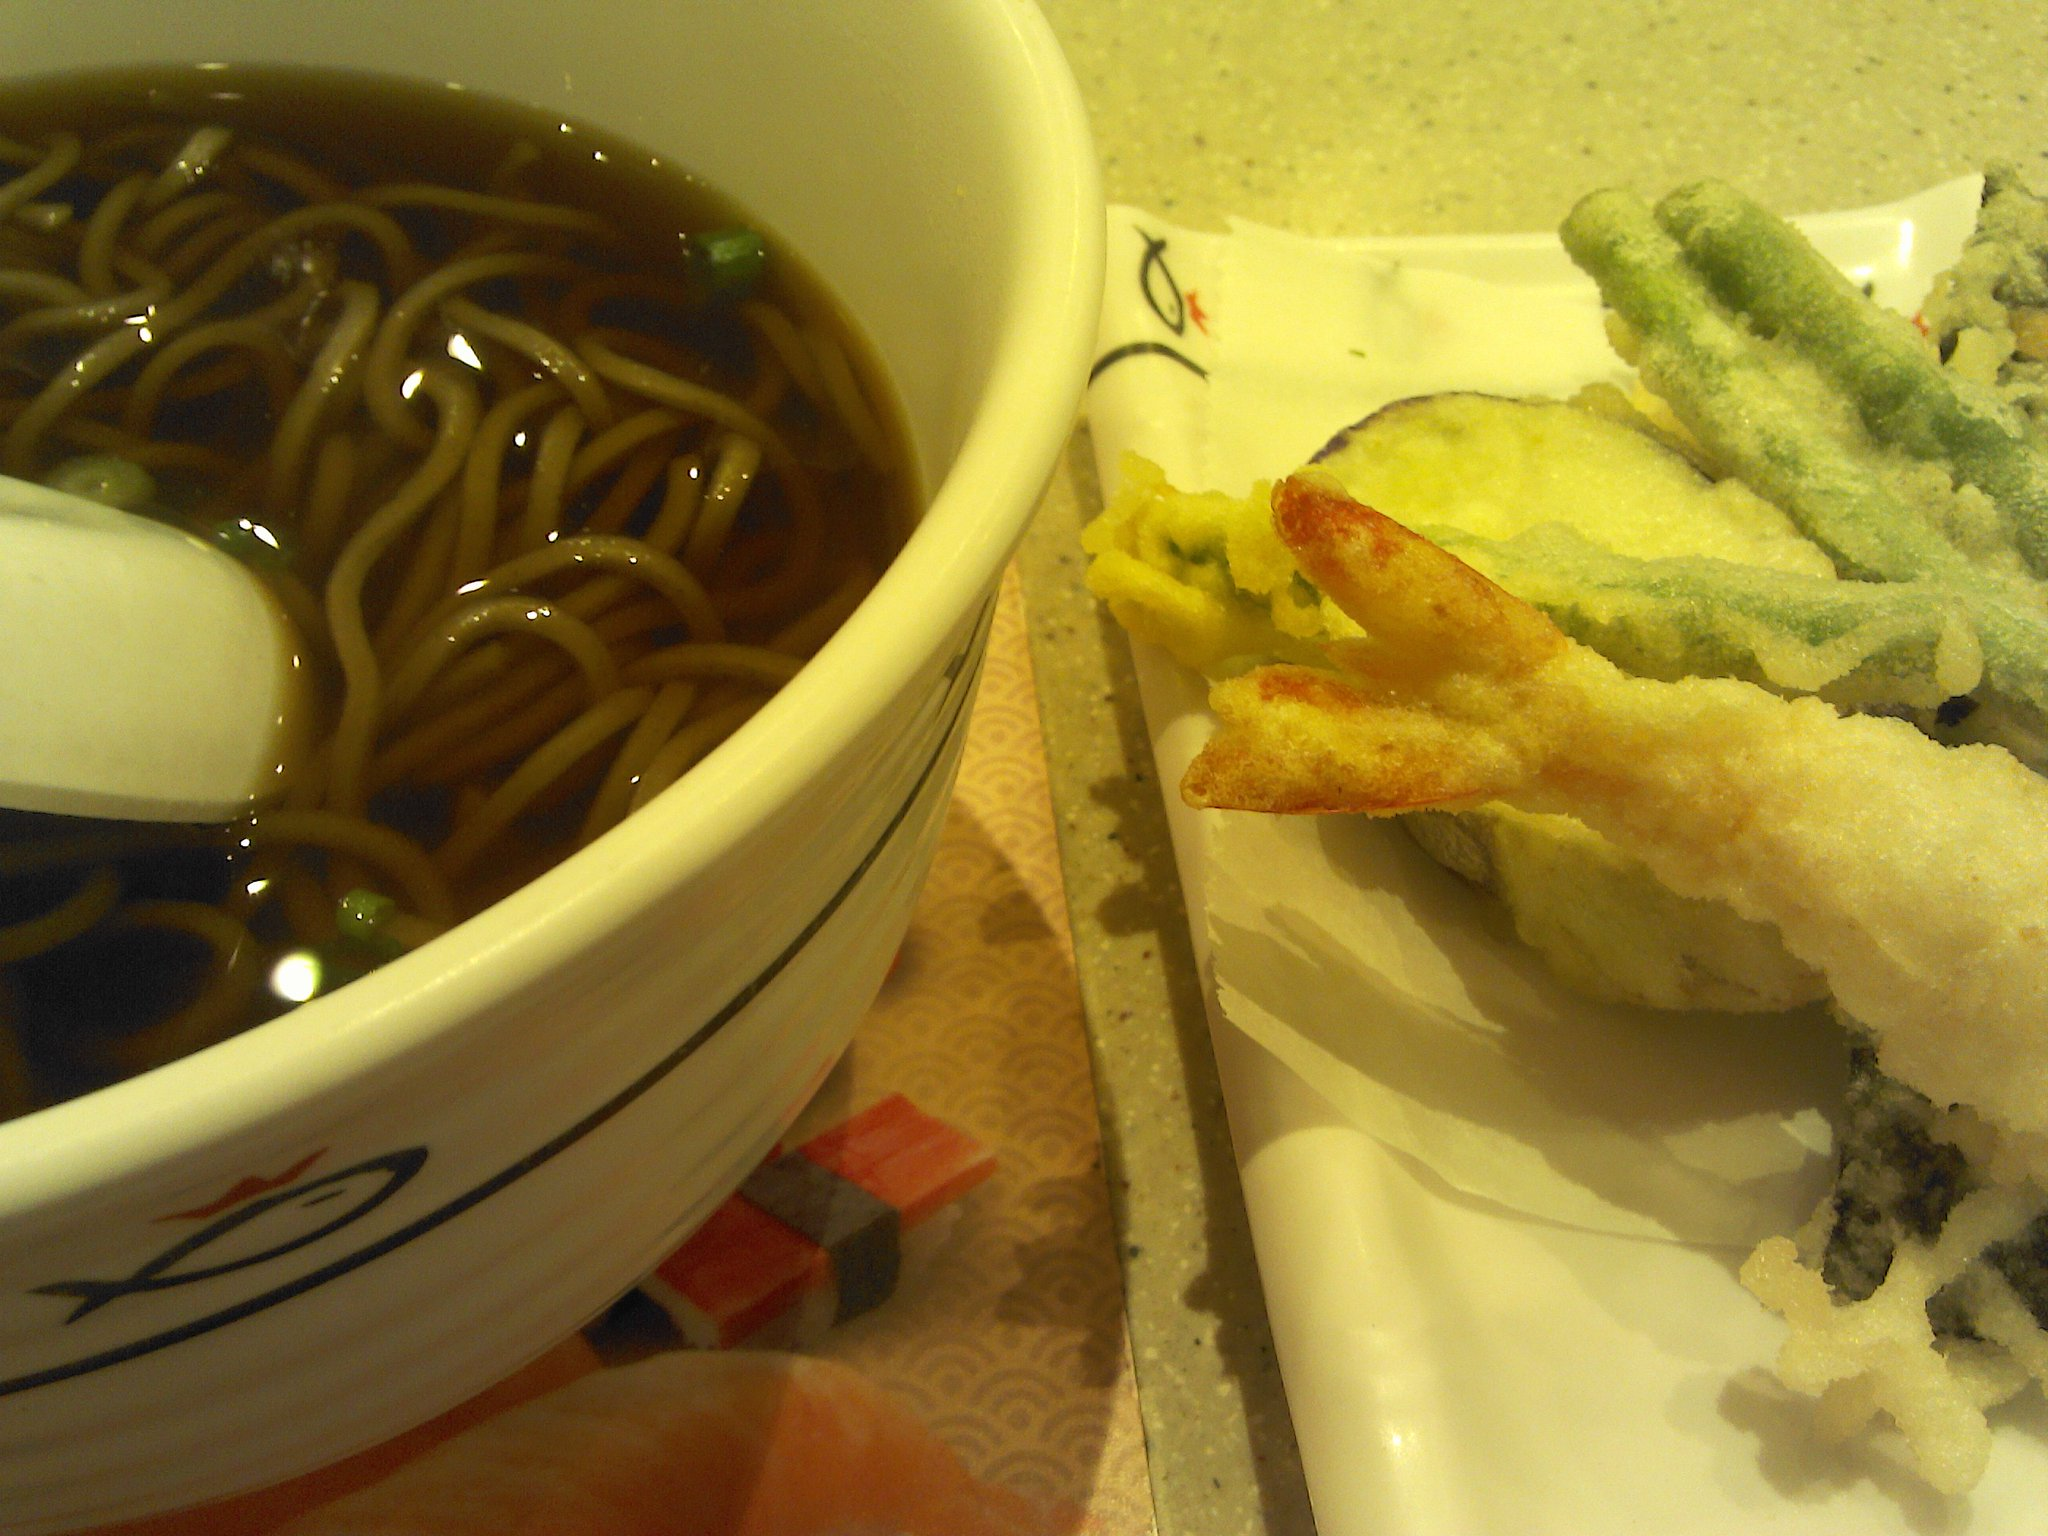 tempura soba, anyone~? http://t.co/ebtSKrho